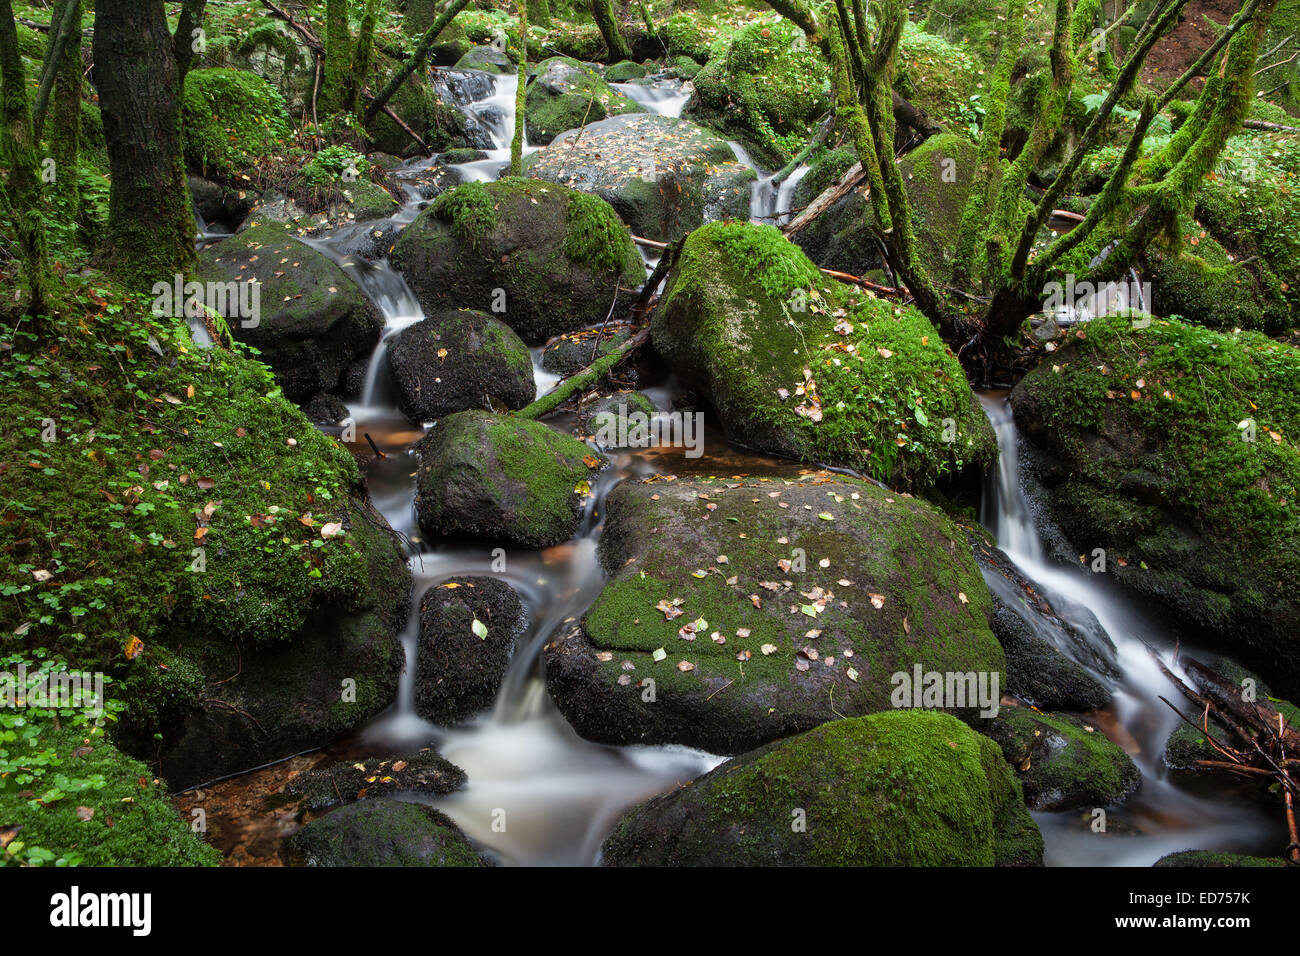 Green forest floor, with trickling water, at late summer. - Stock Image